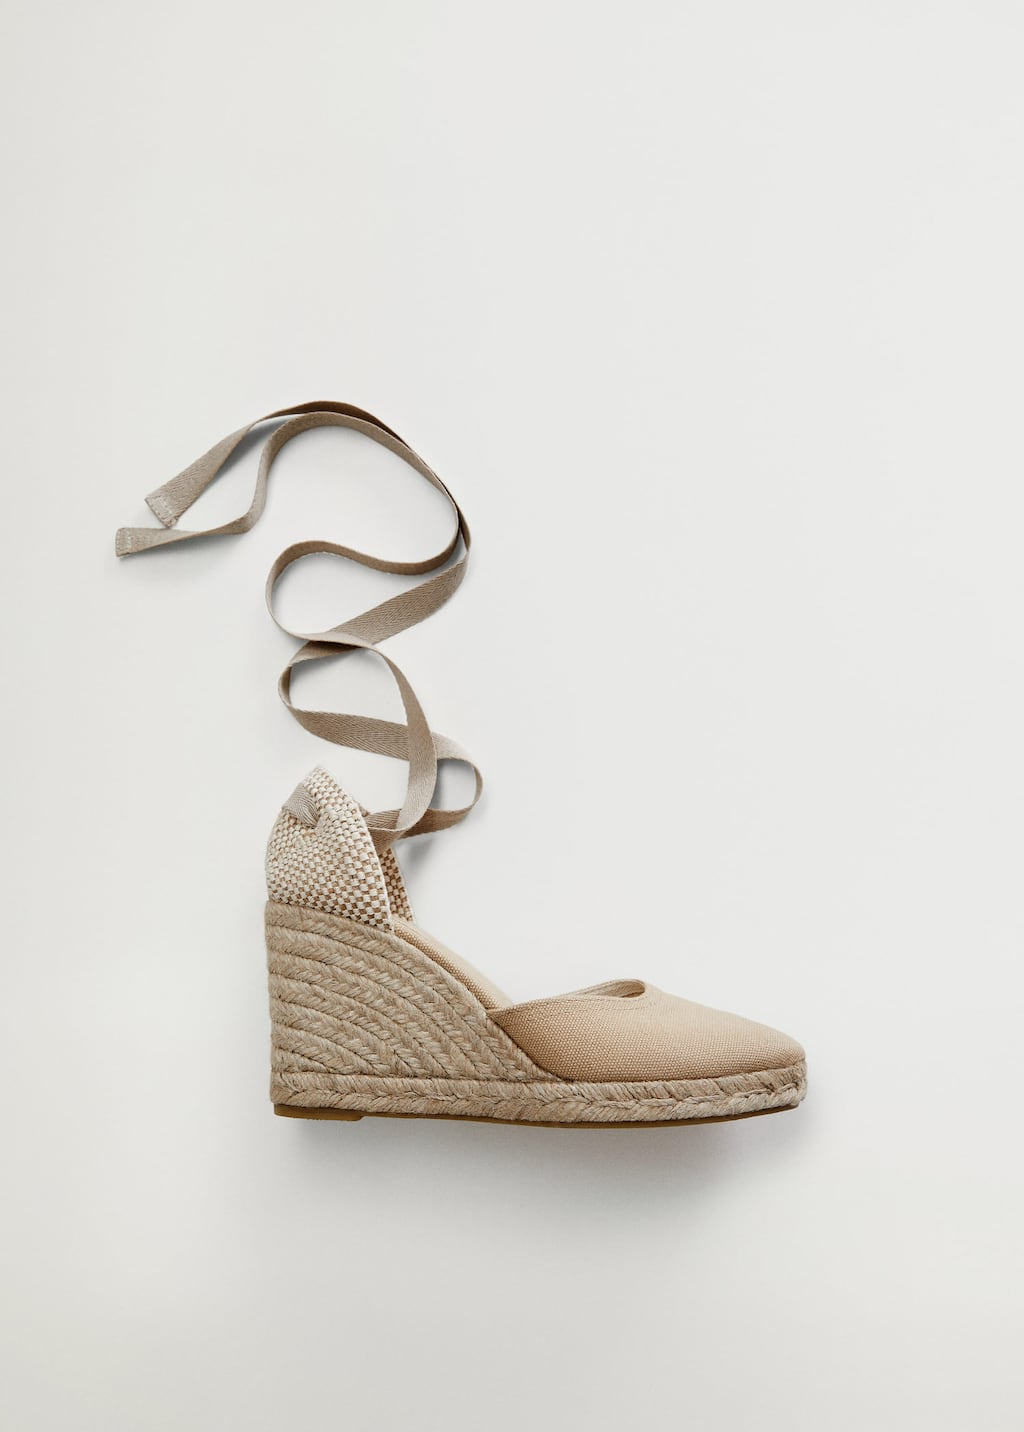 Wedge strips sandals - Article without model